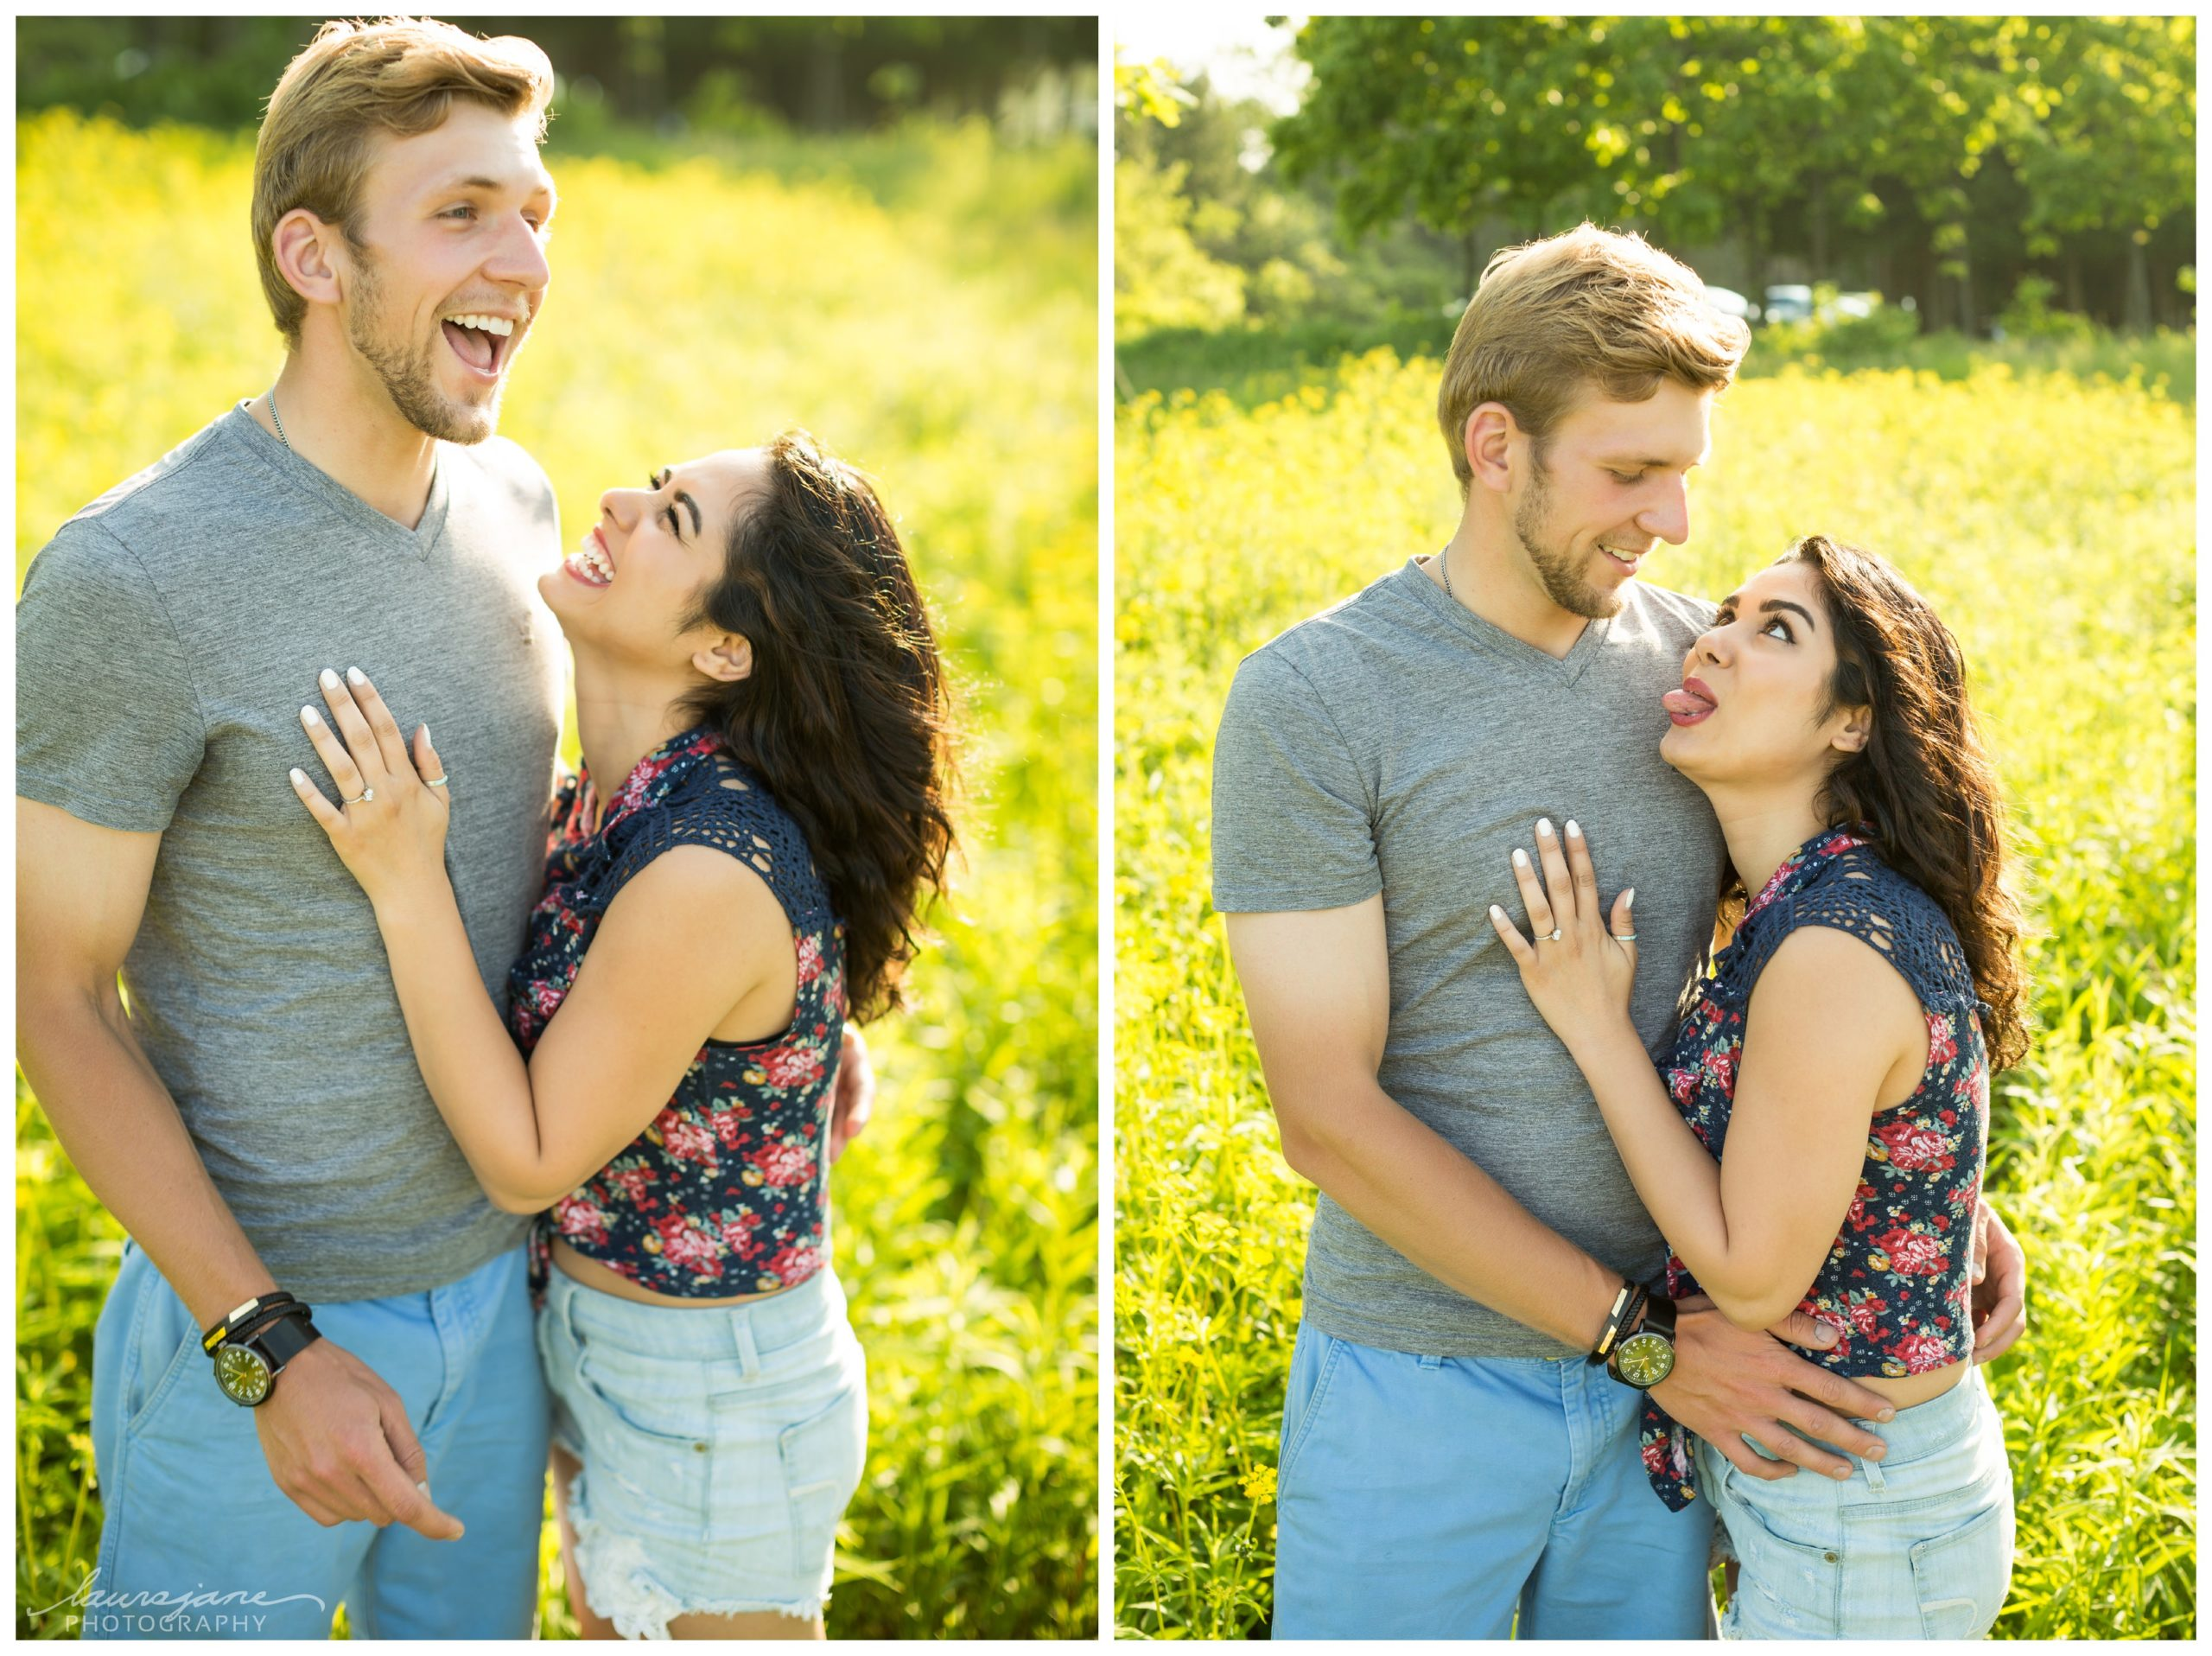 Lighthearted engagement photos in Waukesha